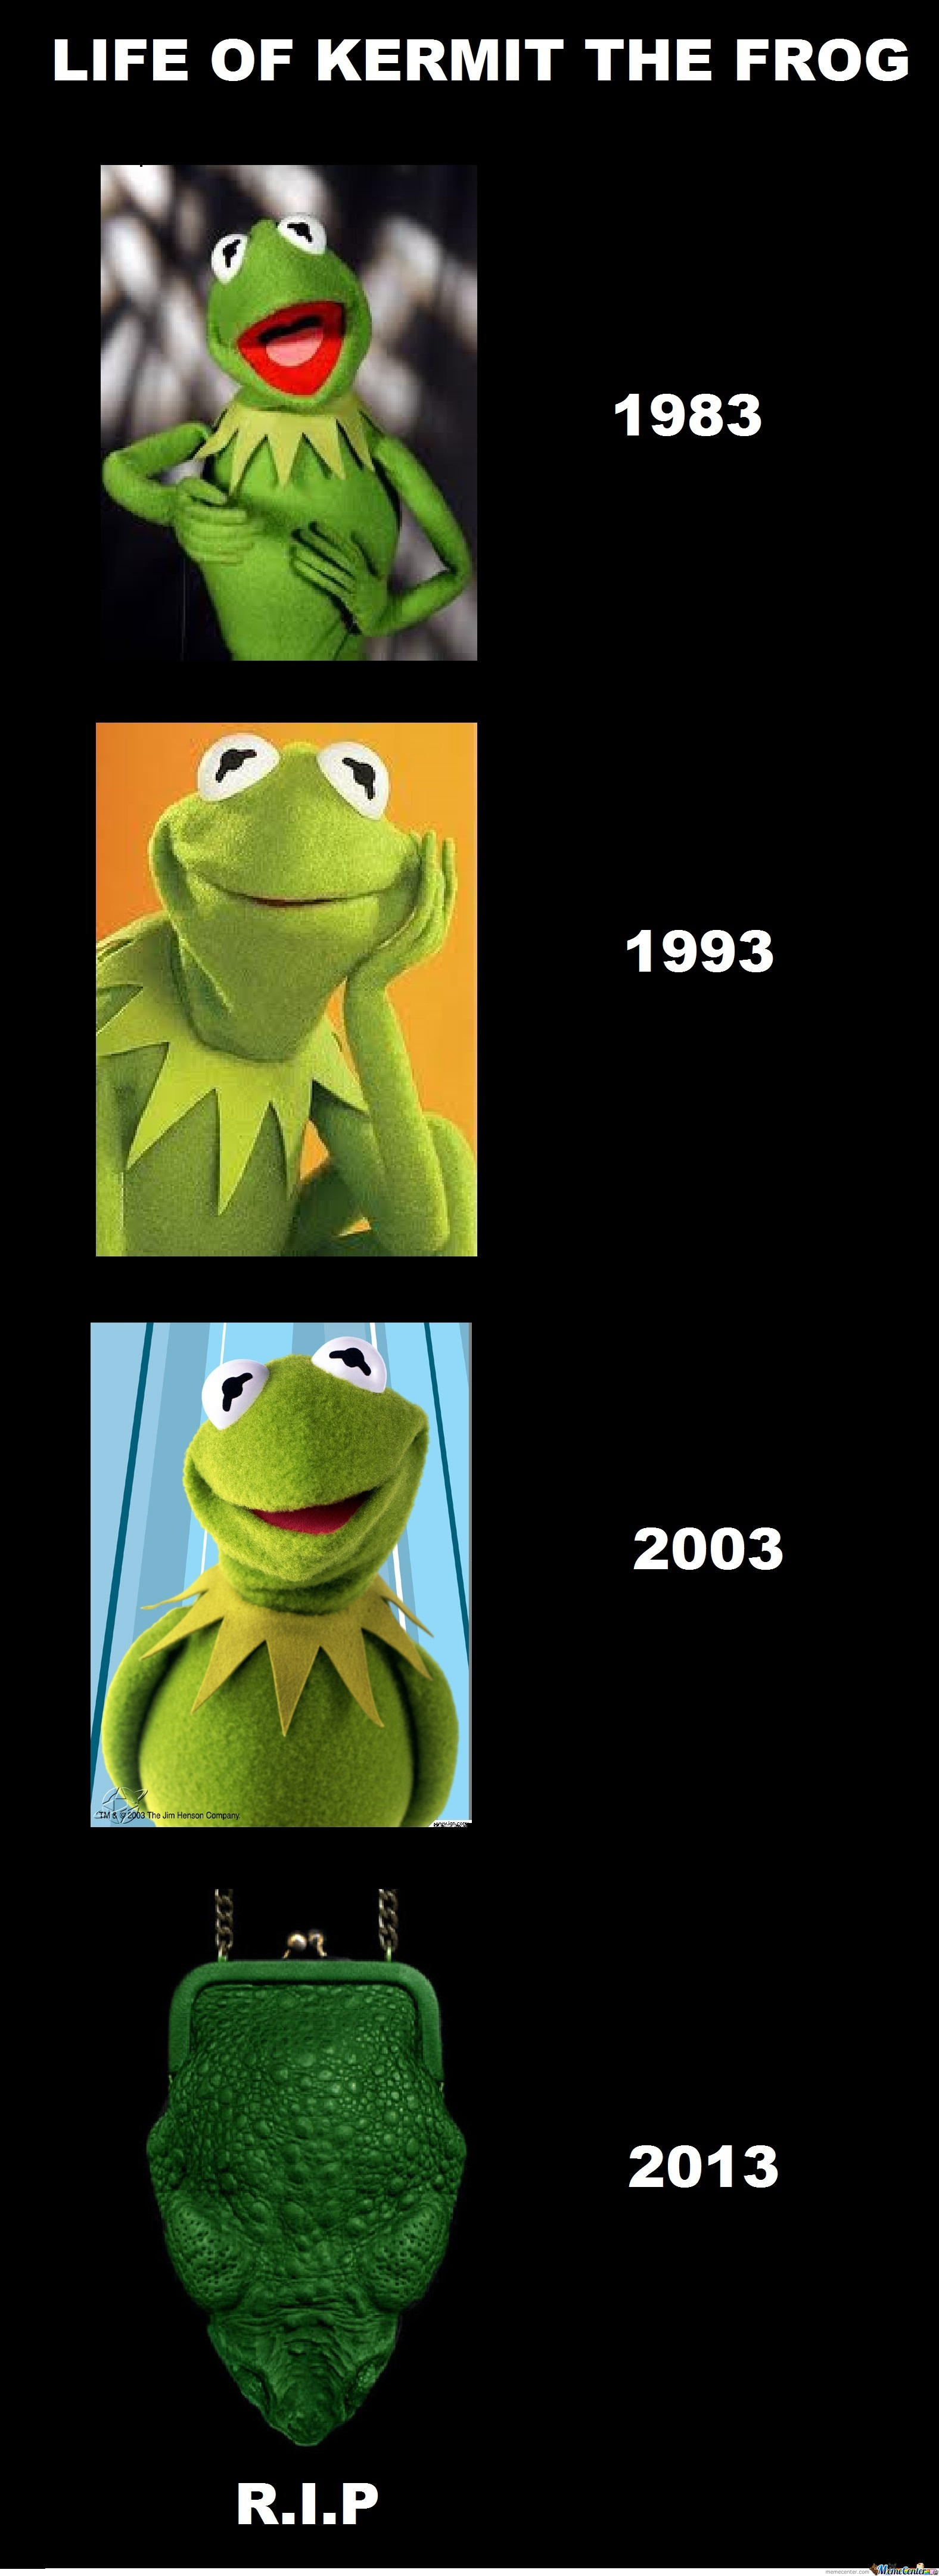 Kermit the frog face